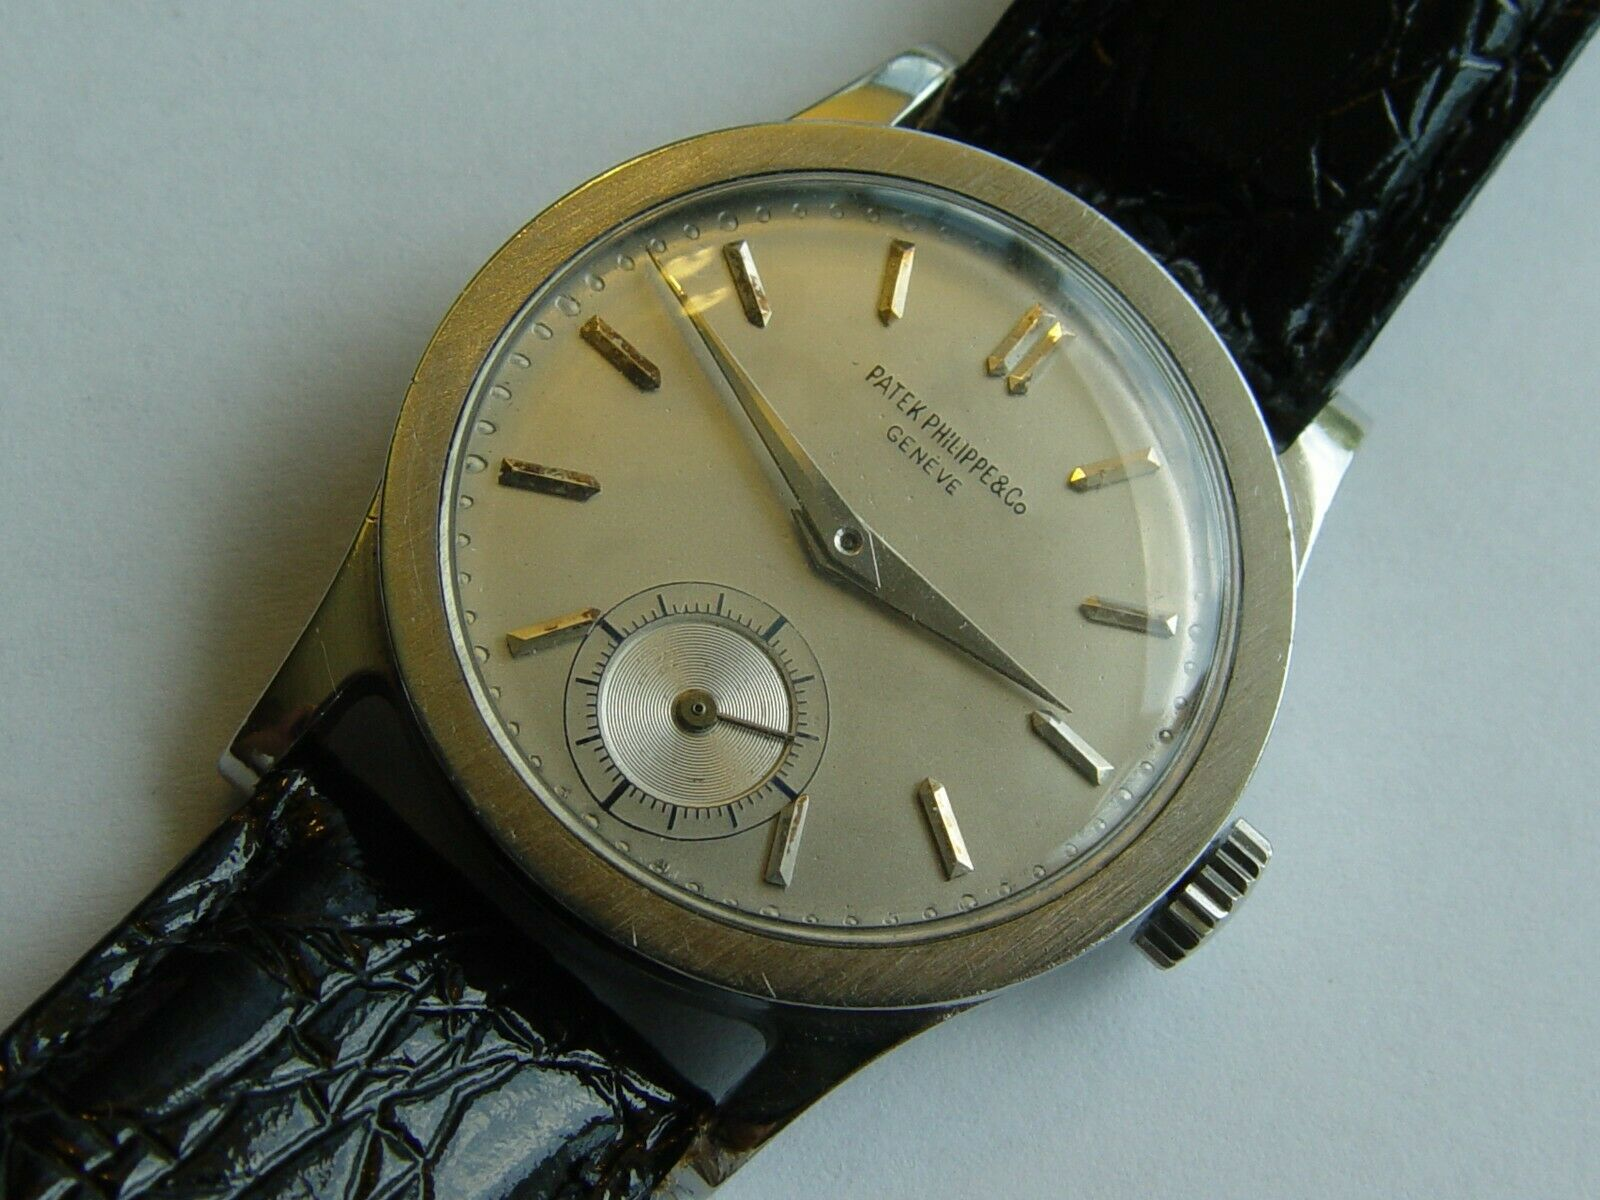 Rare stainless steel Patek Philippe 96 Calatrava men's watch cal 12-120 movement - watch picture 1